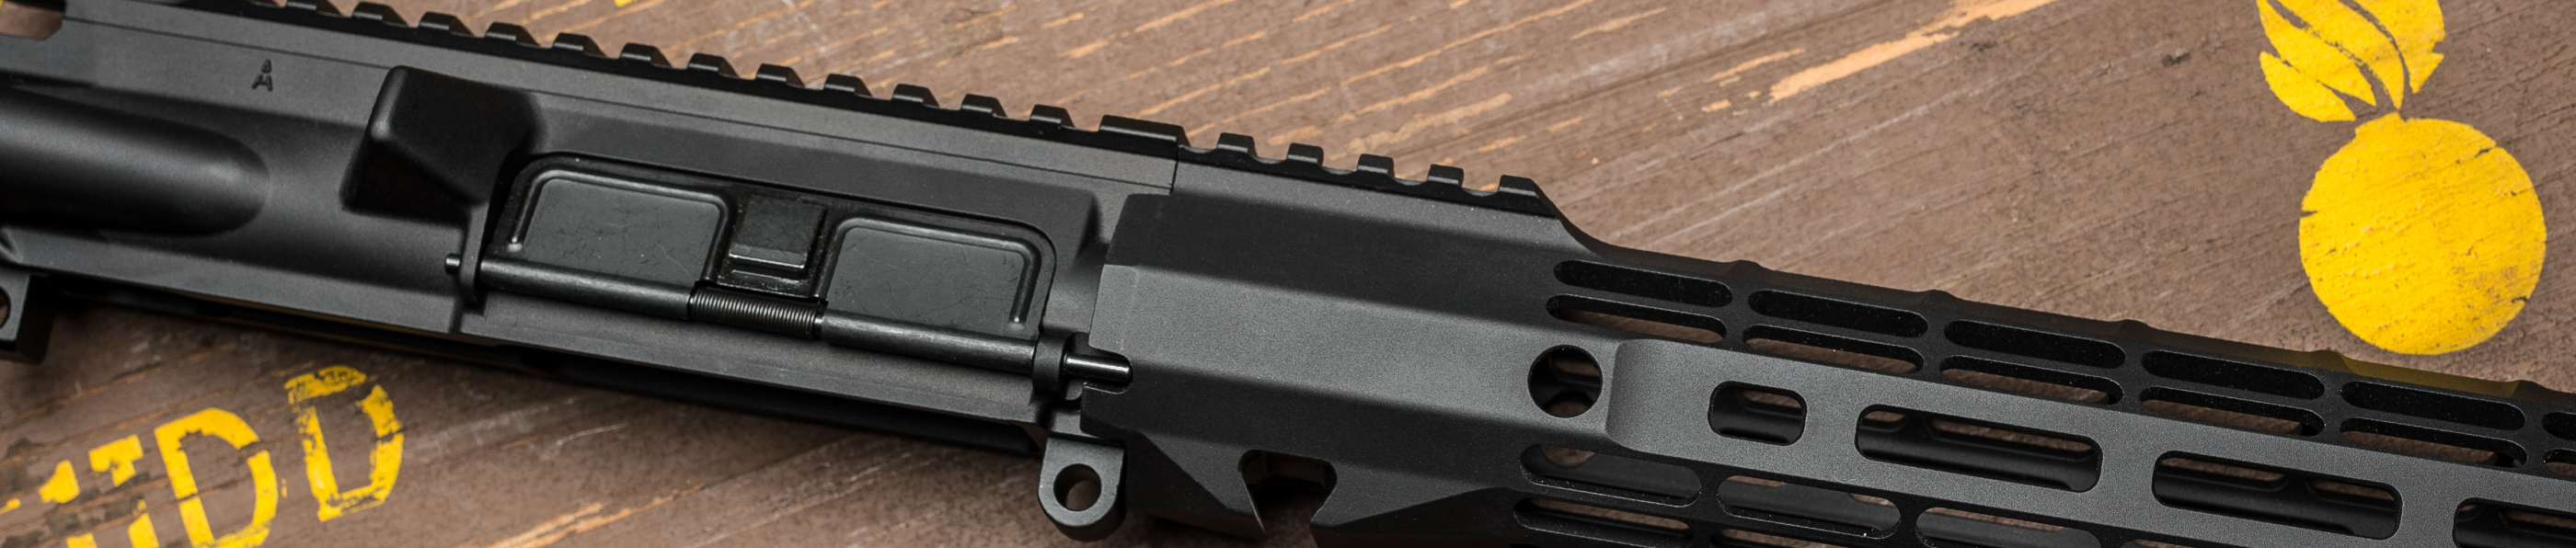 Upper/Handguard Combo Sets